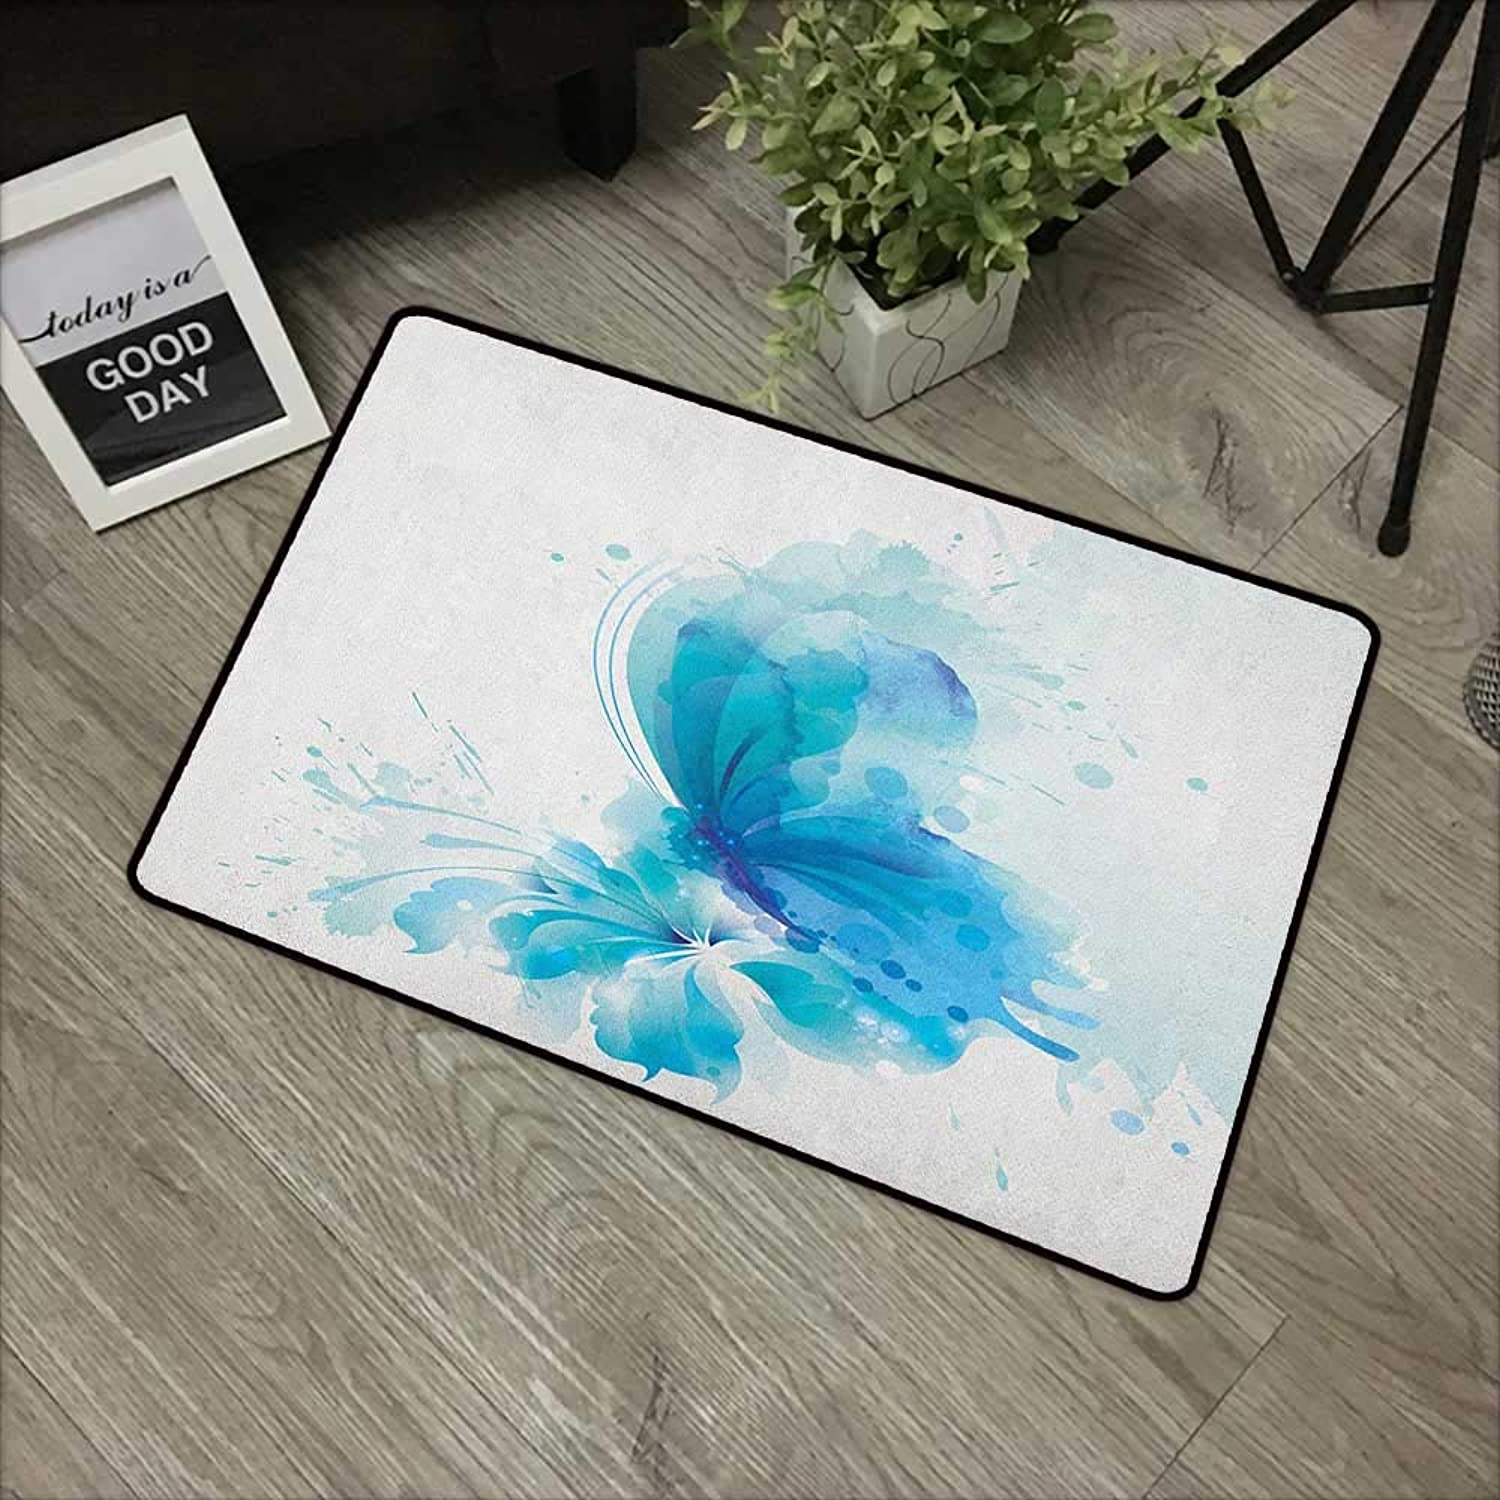 Meeting Room mat W35 x L59 INCH Watercolor,Abstract bluee Butterfly on a Blooming Flower Romantic Artistic Design, bluee Sky bluee White with Non-Slip Backing Door Mat Carpet